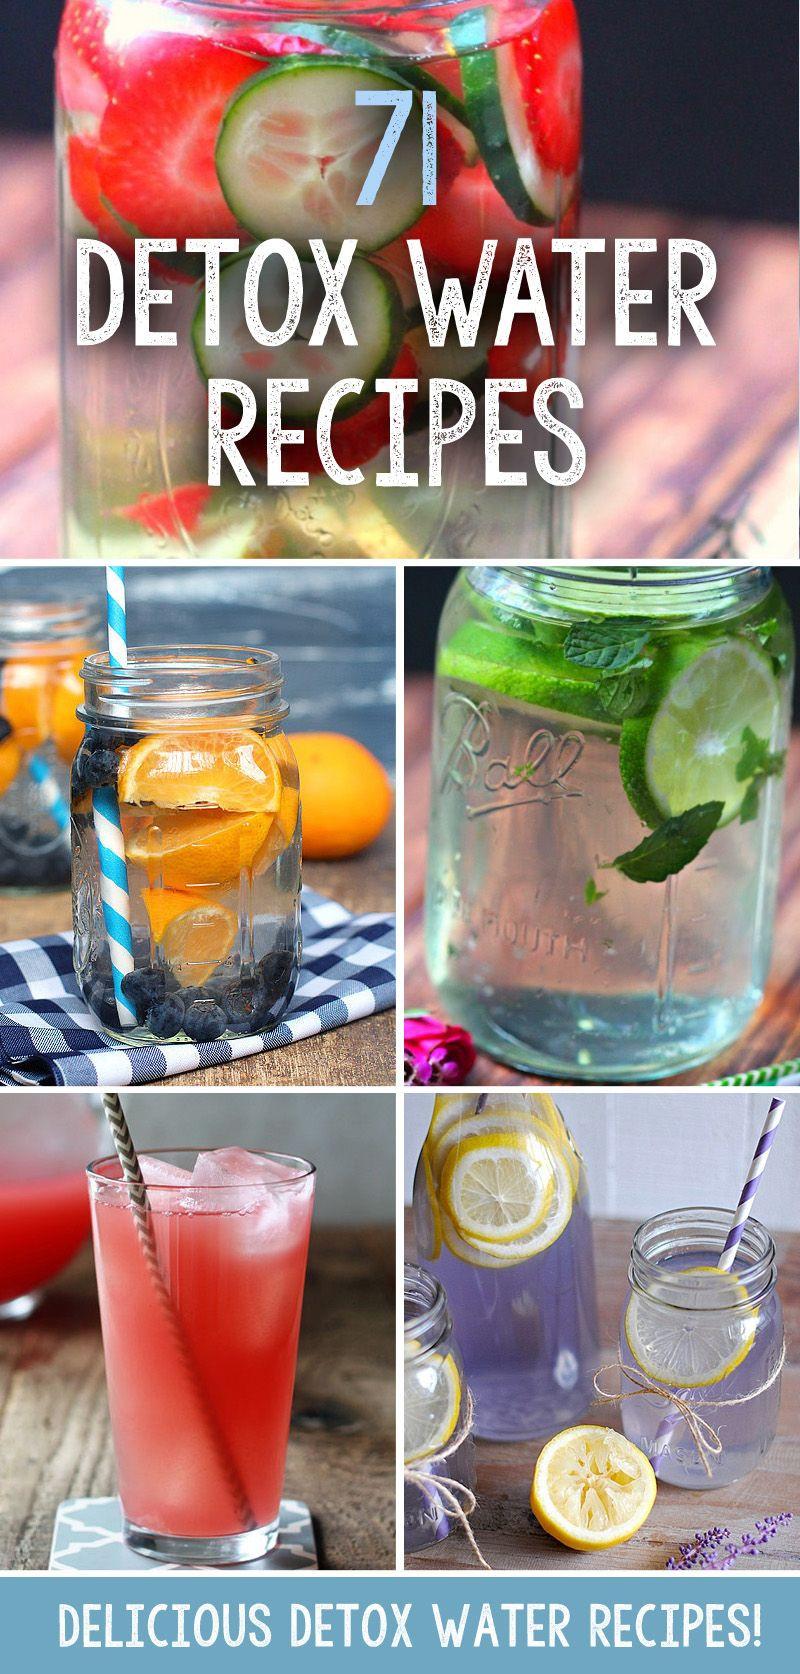 Green Tea Weight Loss Drink Detox Waters  So we have collected a huge list of 71 amazing and healthy